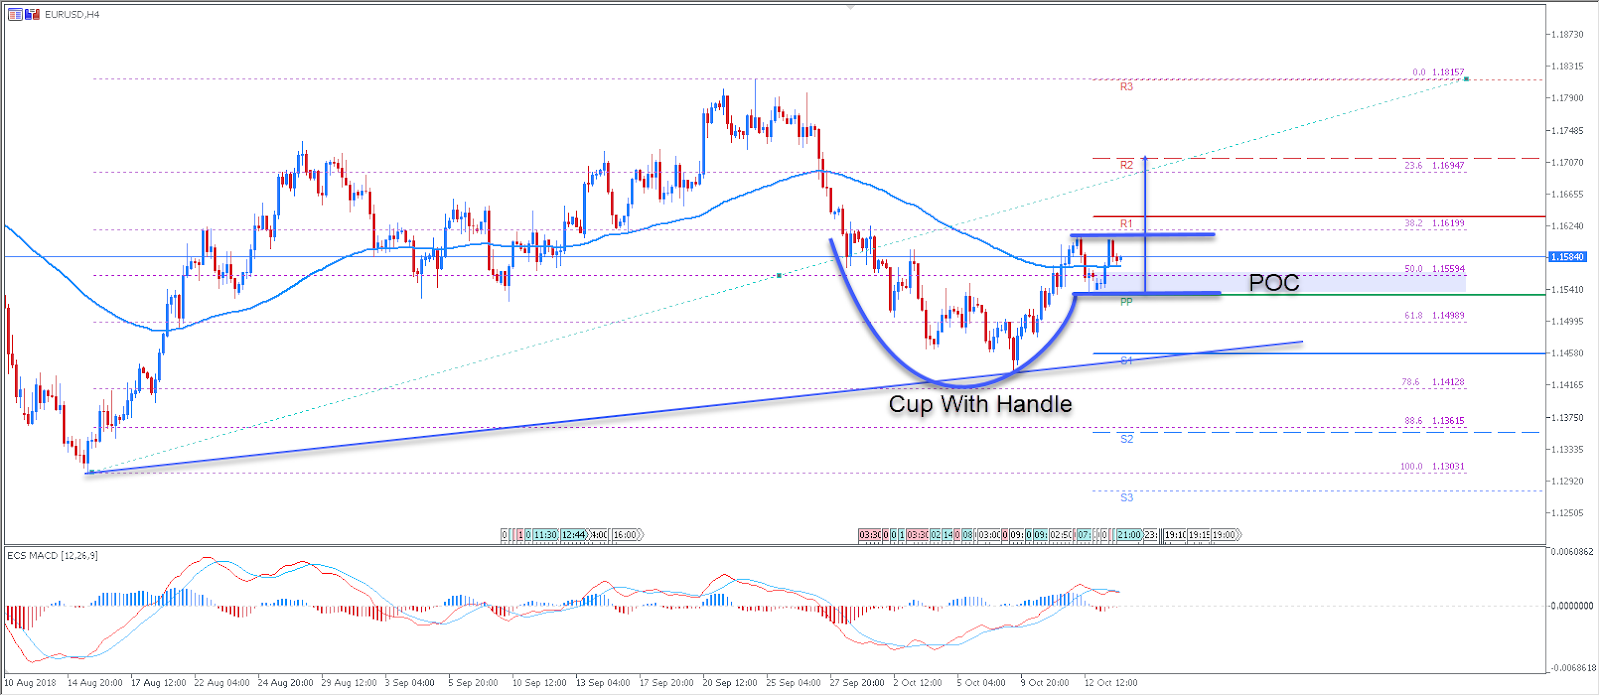 EURUSD Chart - Technical Analysis